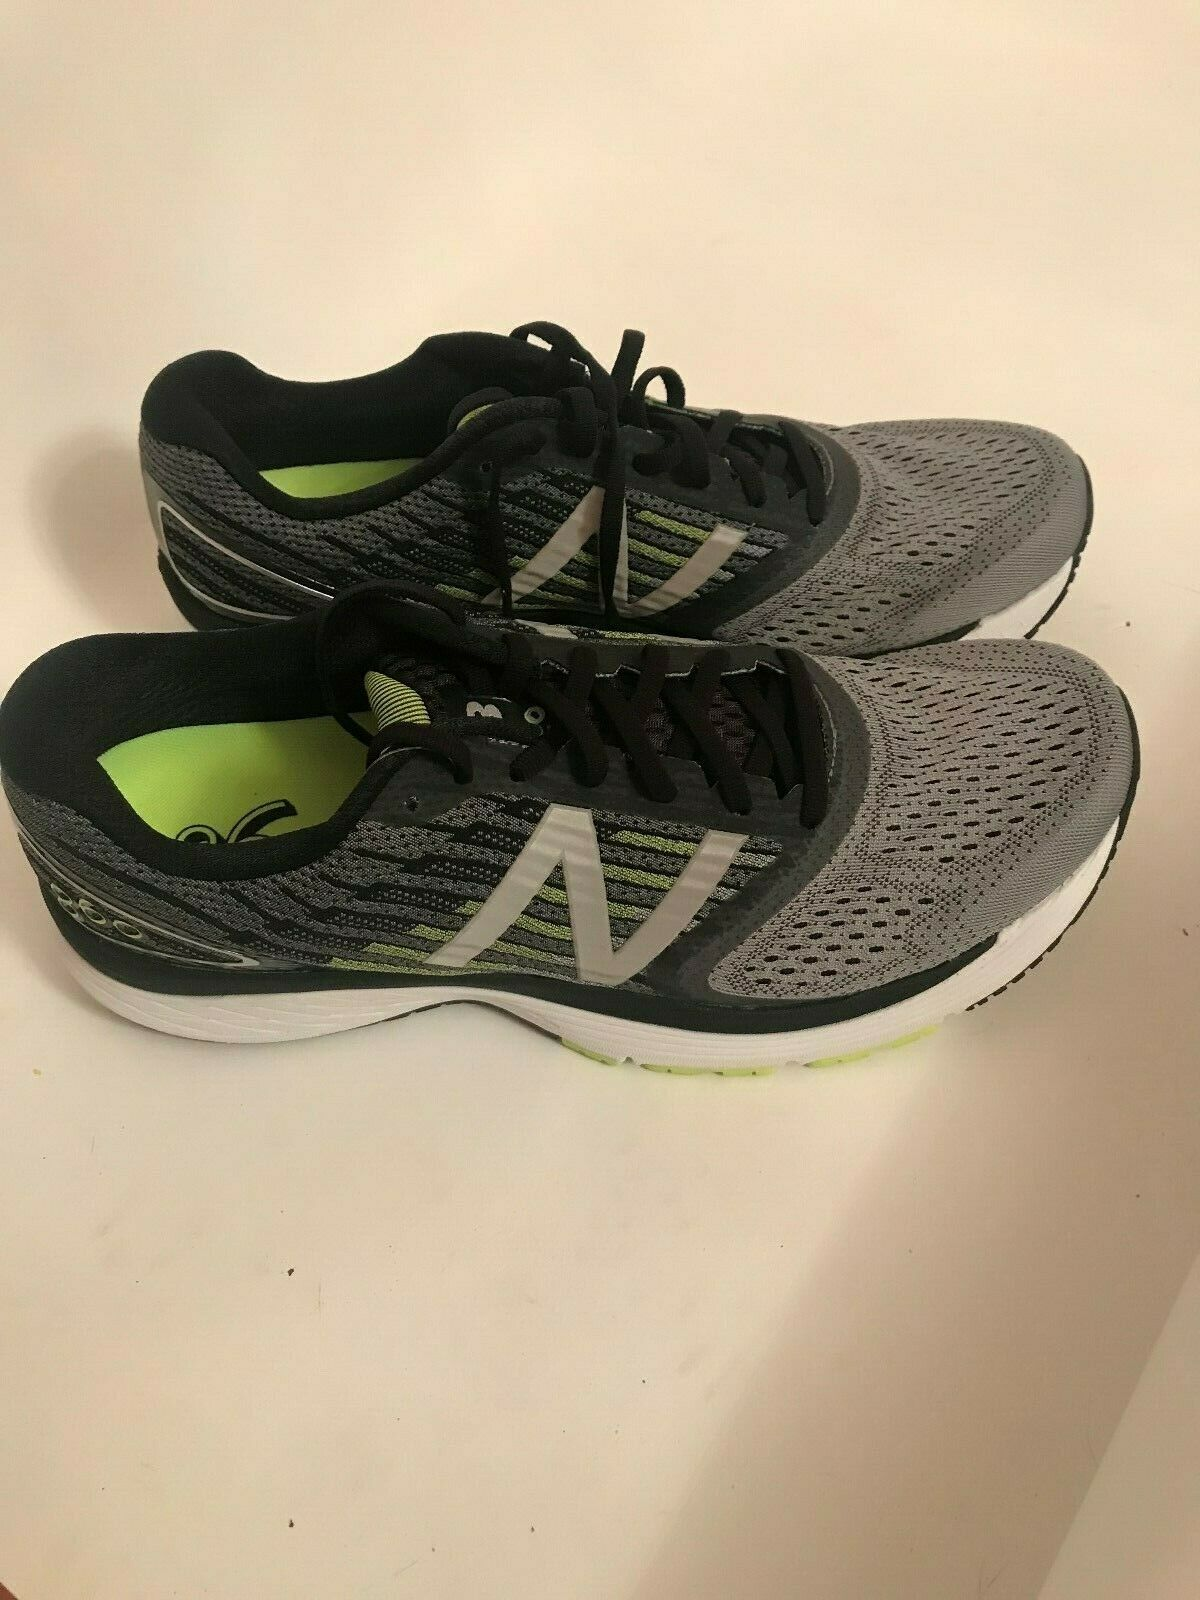 NEW BALANCE 860 v9 M860GY9, Men Sizes 9.5 11 11.5 12.5 14 Wide (2E) GreyHiLite!